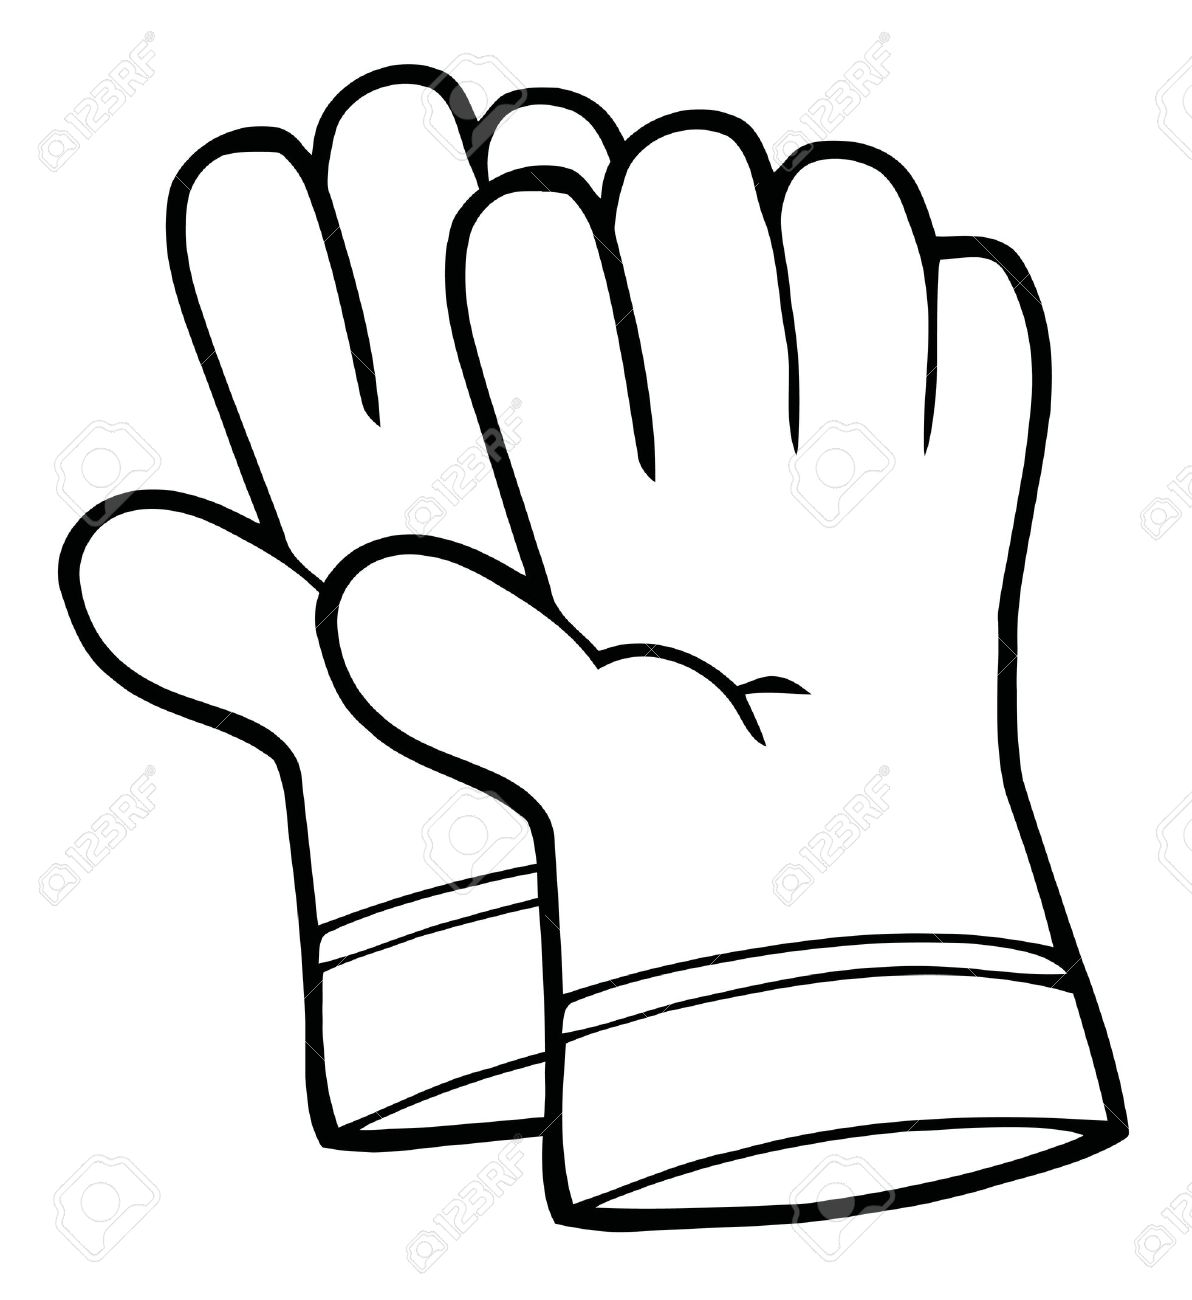 Gloves clipart black and white 1 » Clipart Station.